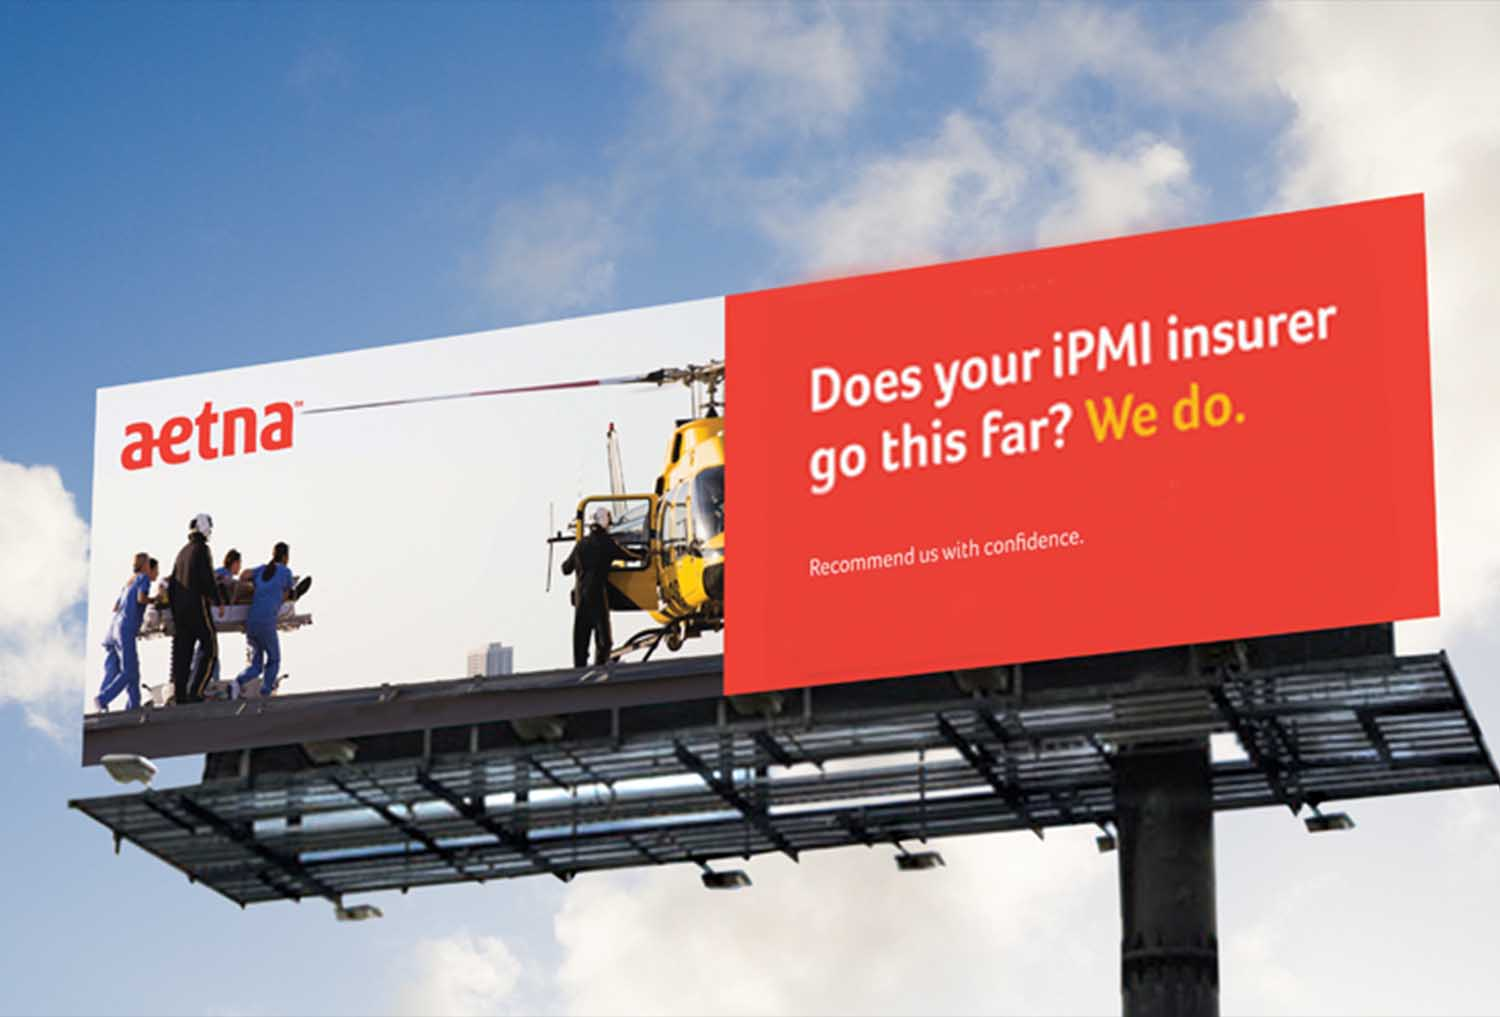 Image of billboard advertising campaign for aetna insurance dubai